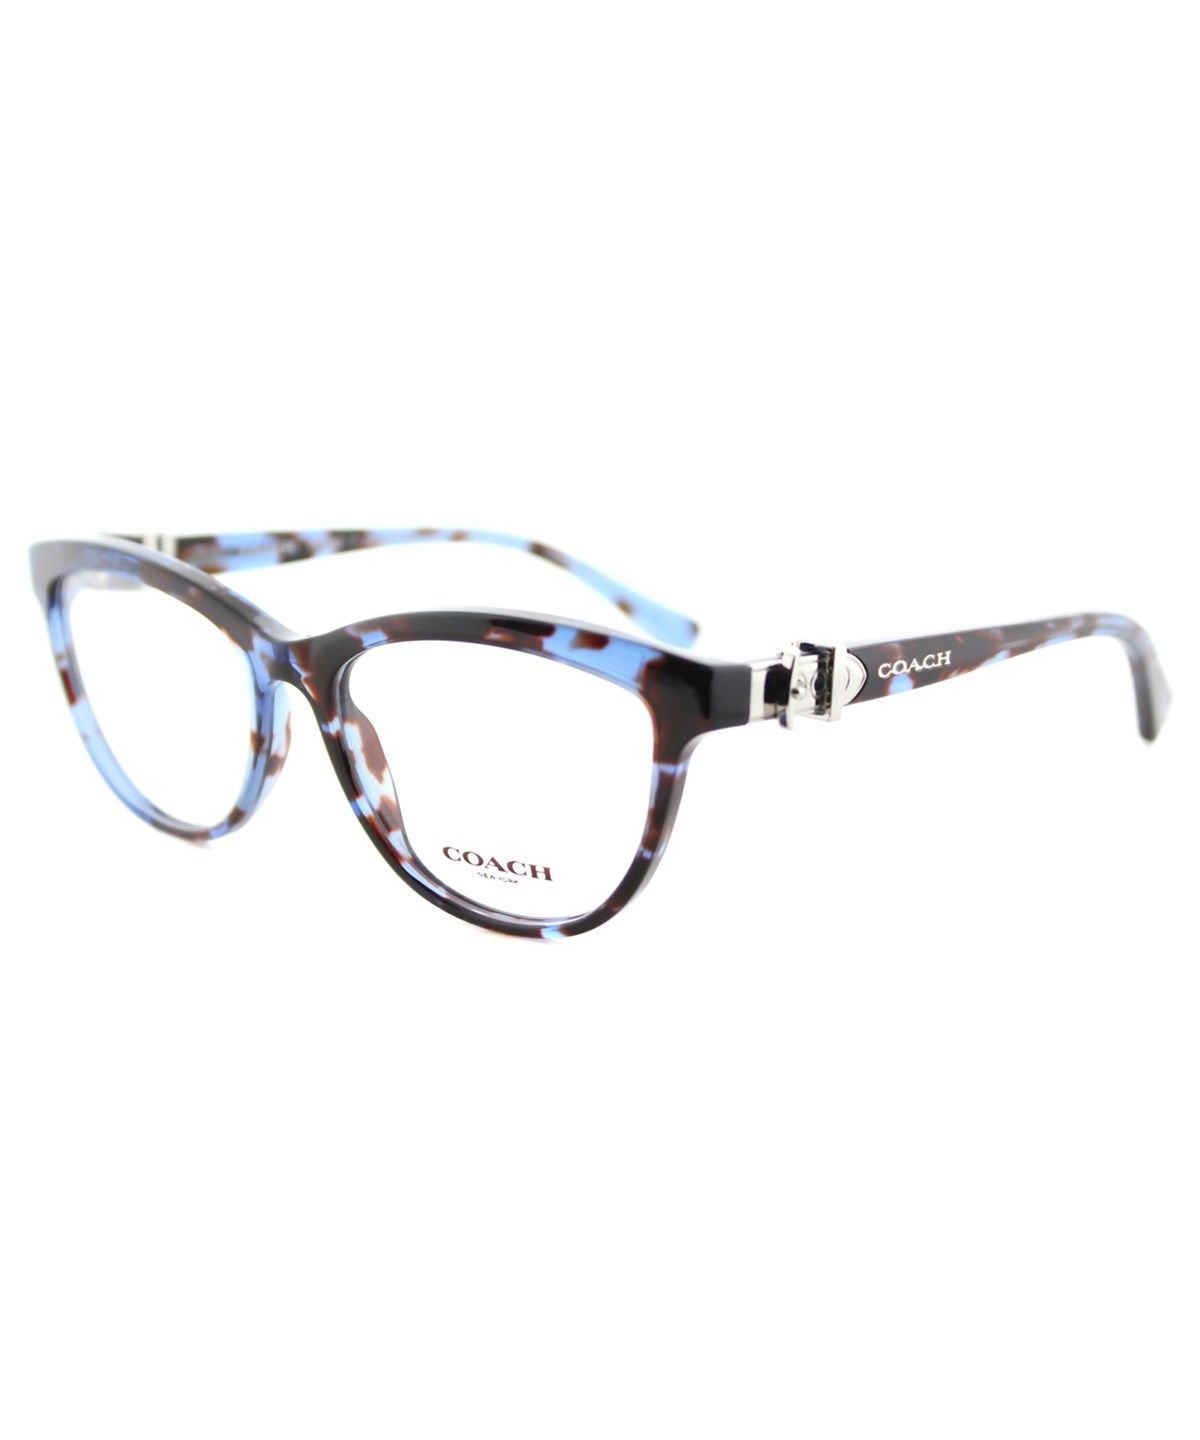 b4e2b42169 COACH Cat-Eye Plastic Eyeglasses .  coach  eyeglasses